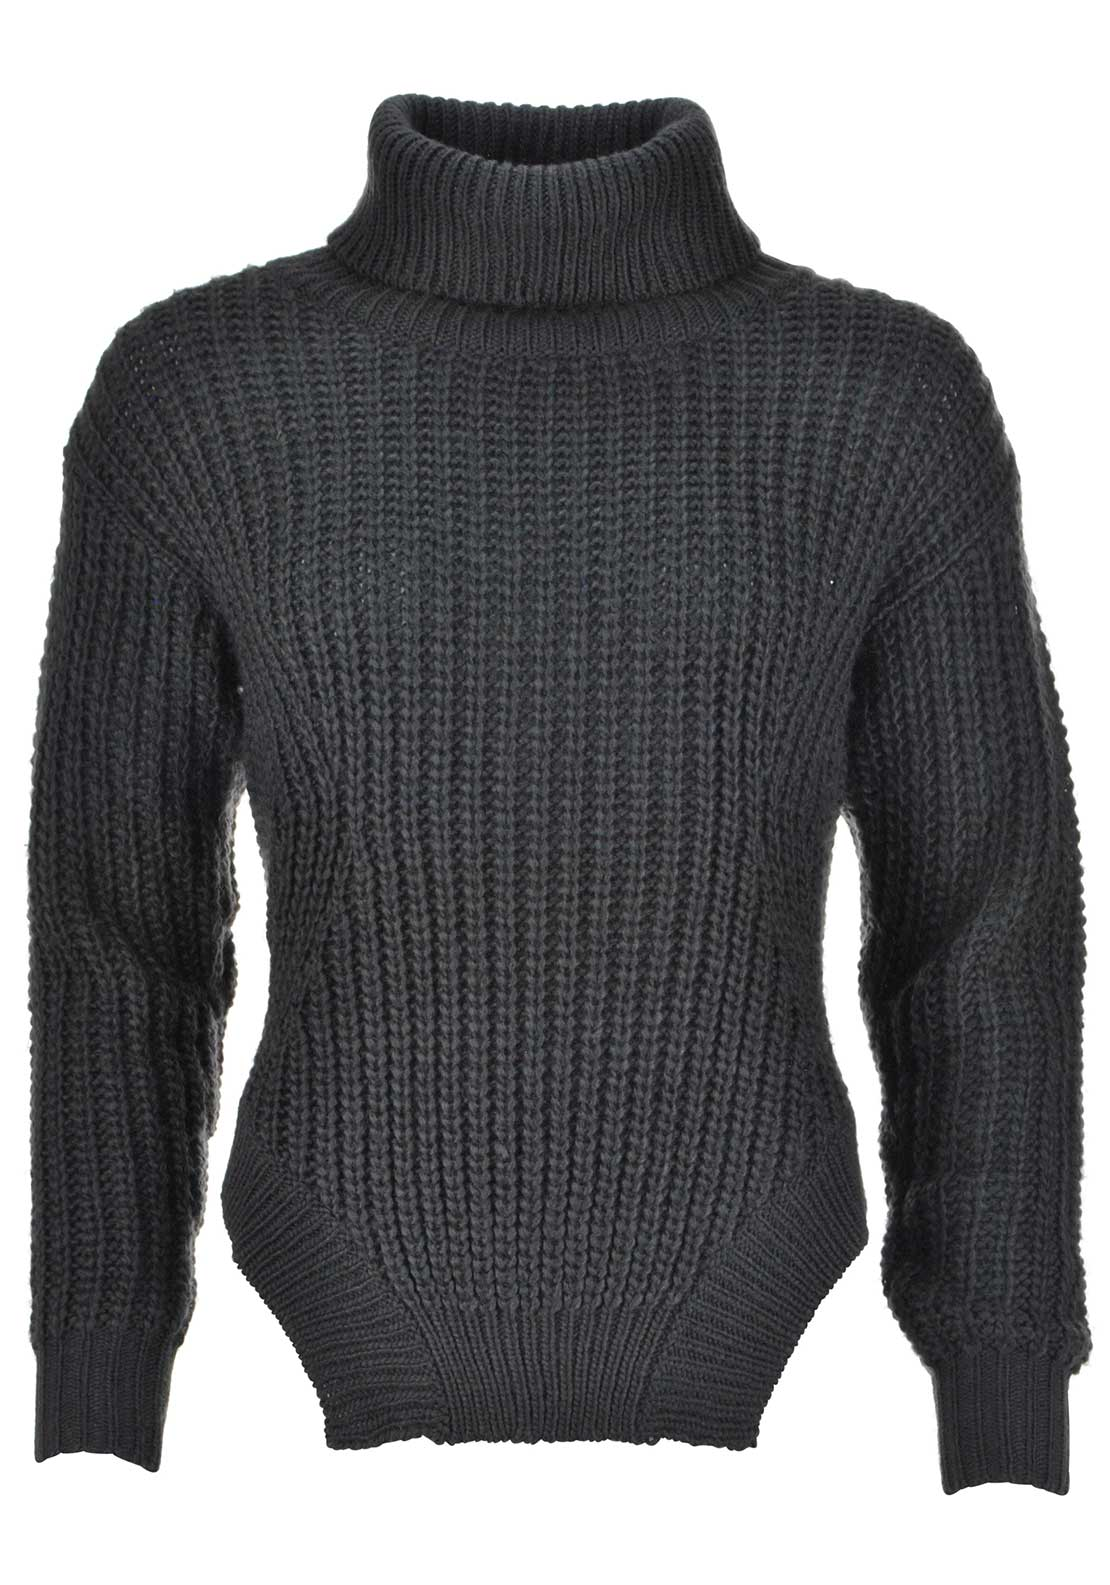 Apanage Wool Blend Chunky Knit Sweater Jumper, Charcoal